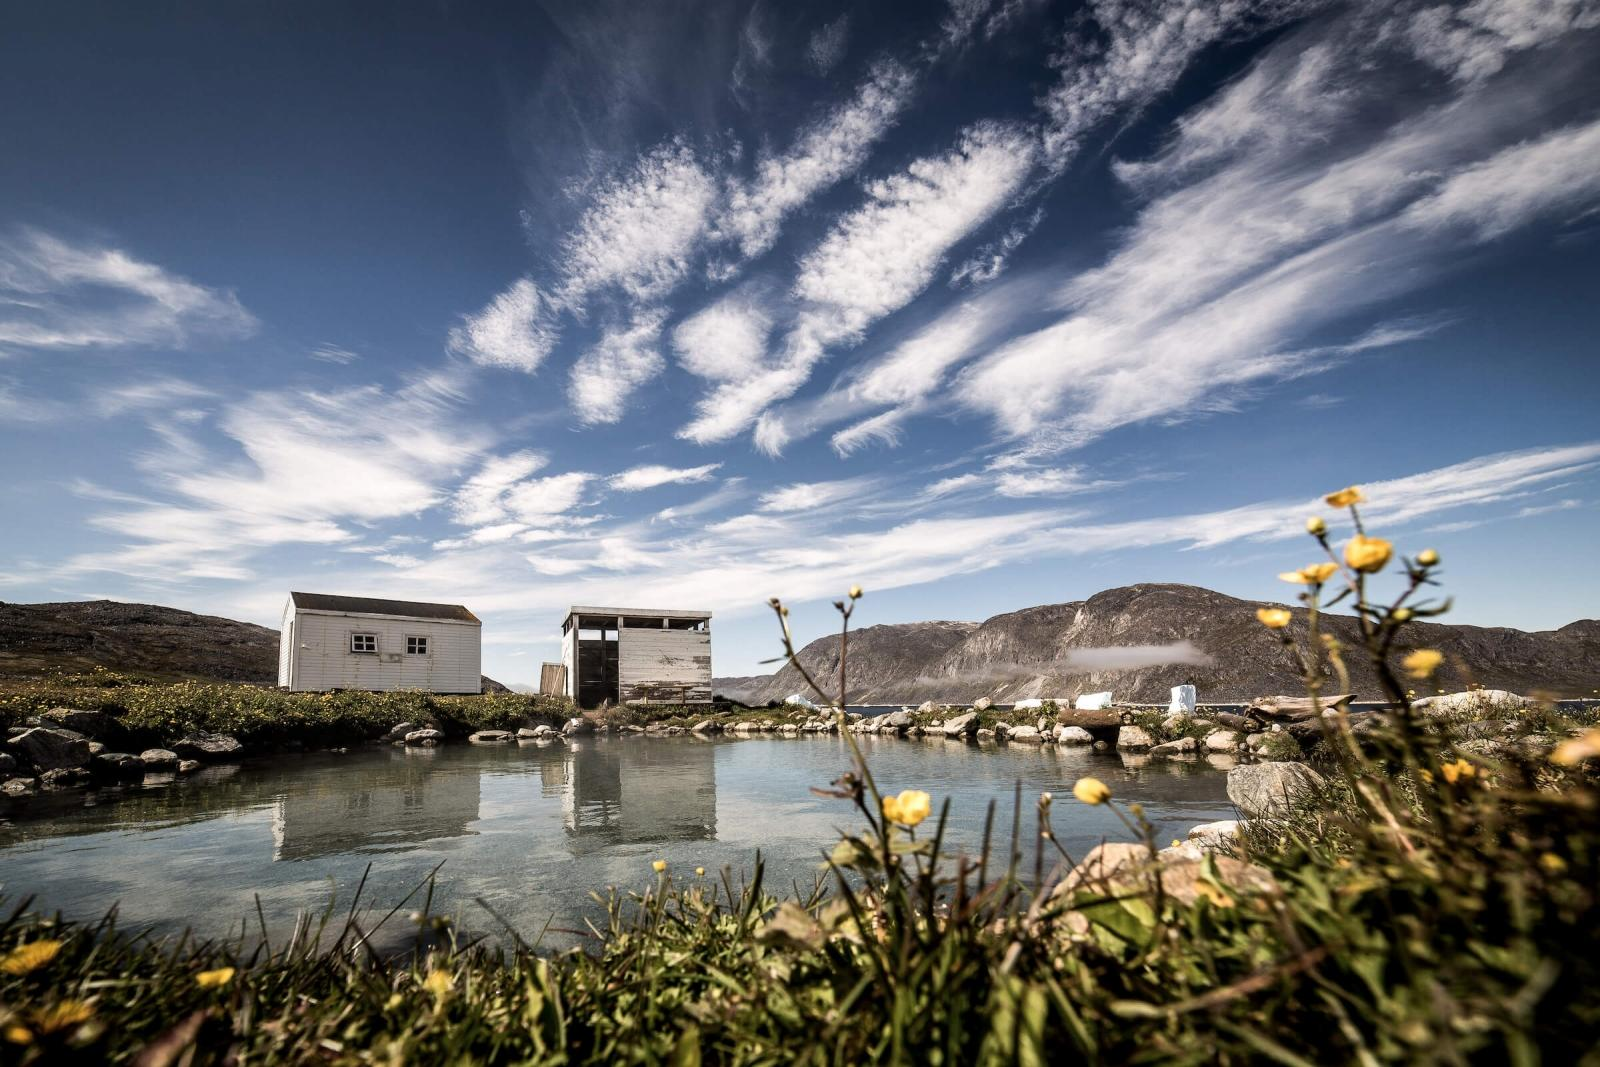 The relaxing setting of the Uunartoq hot springs in South Greenland